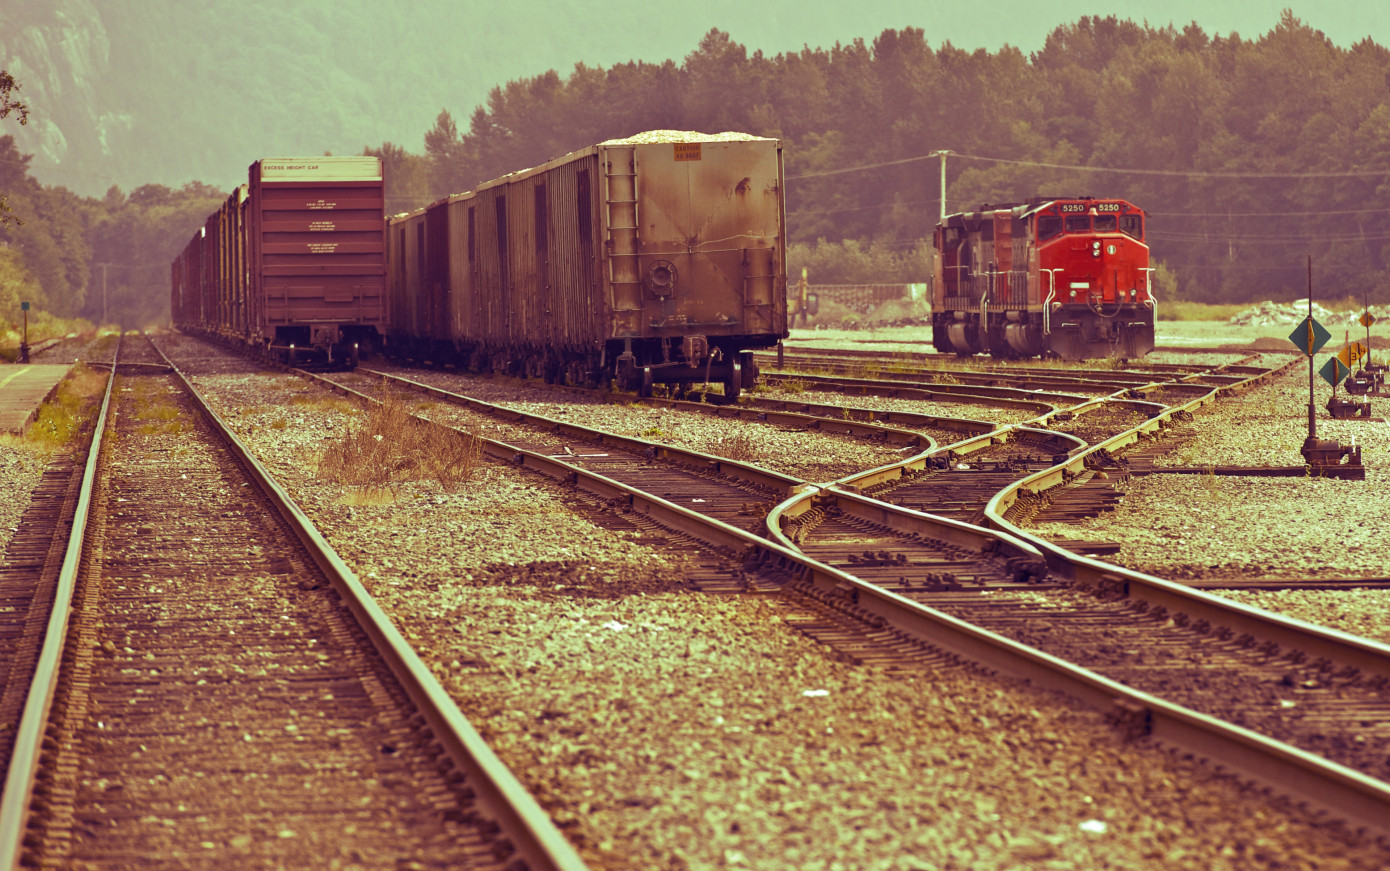 Canada's forest products sector issues media statement on rail network closures